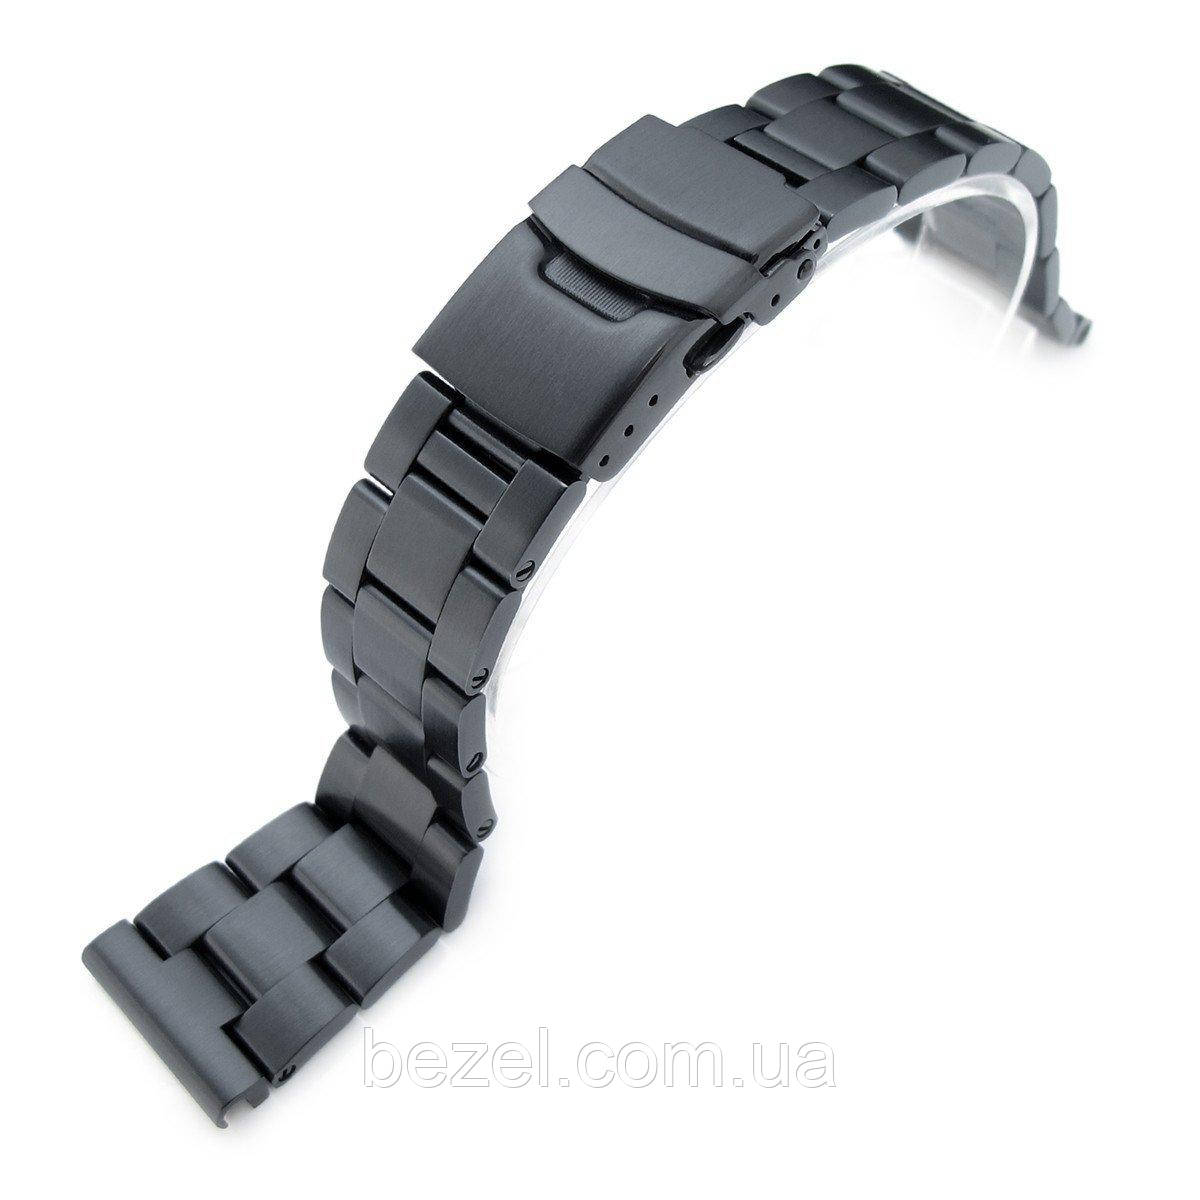 21.5mm Super Oyster 316L SS Metal Watch Band for Seiko Tuna, Diver Clasp, PVD Black